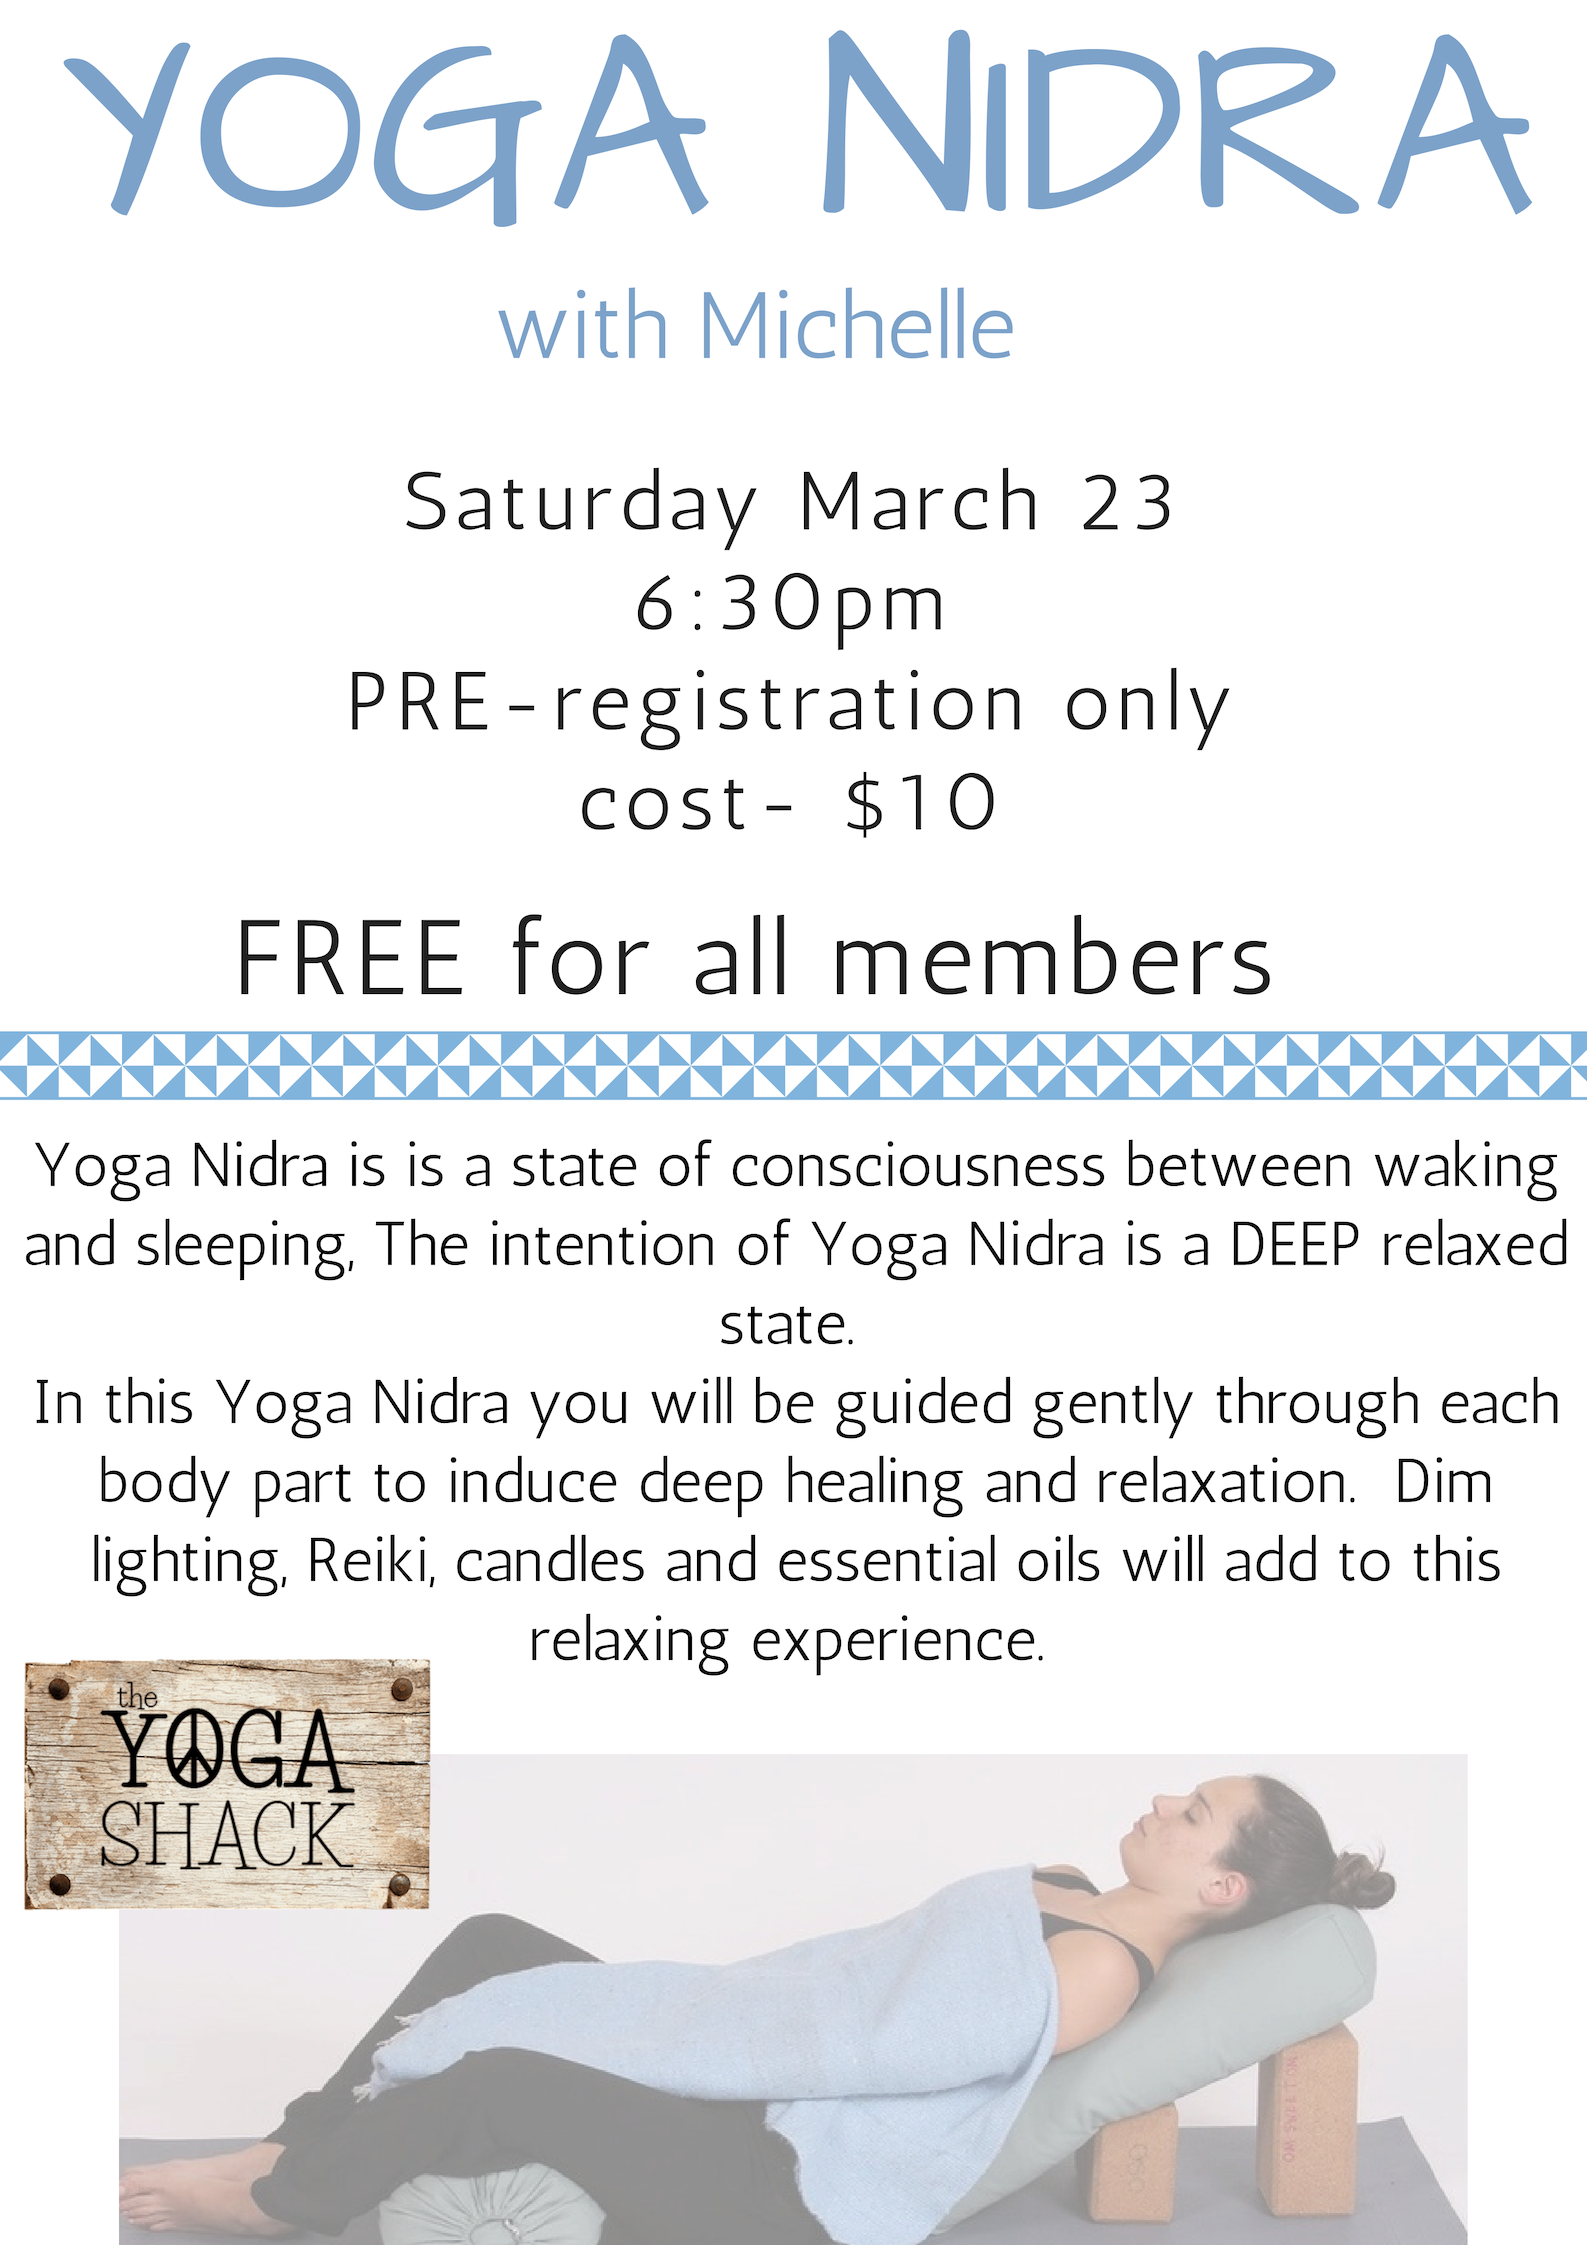 Copy of Join Cindy & Michelle for this 90 minute transformational workshop. RESTORATIVE yoga practice where you can let go of stress, anxiety, expectations. Special guided meditation following the practice. This wo.jpg